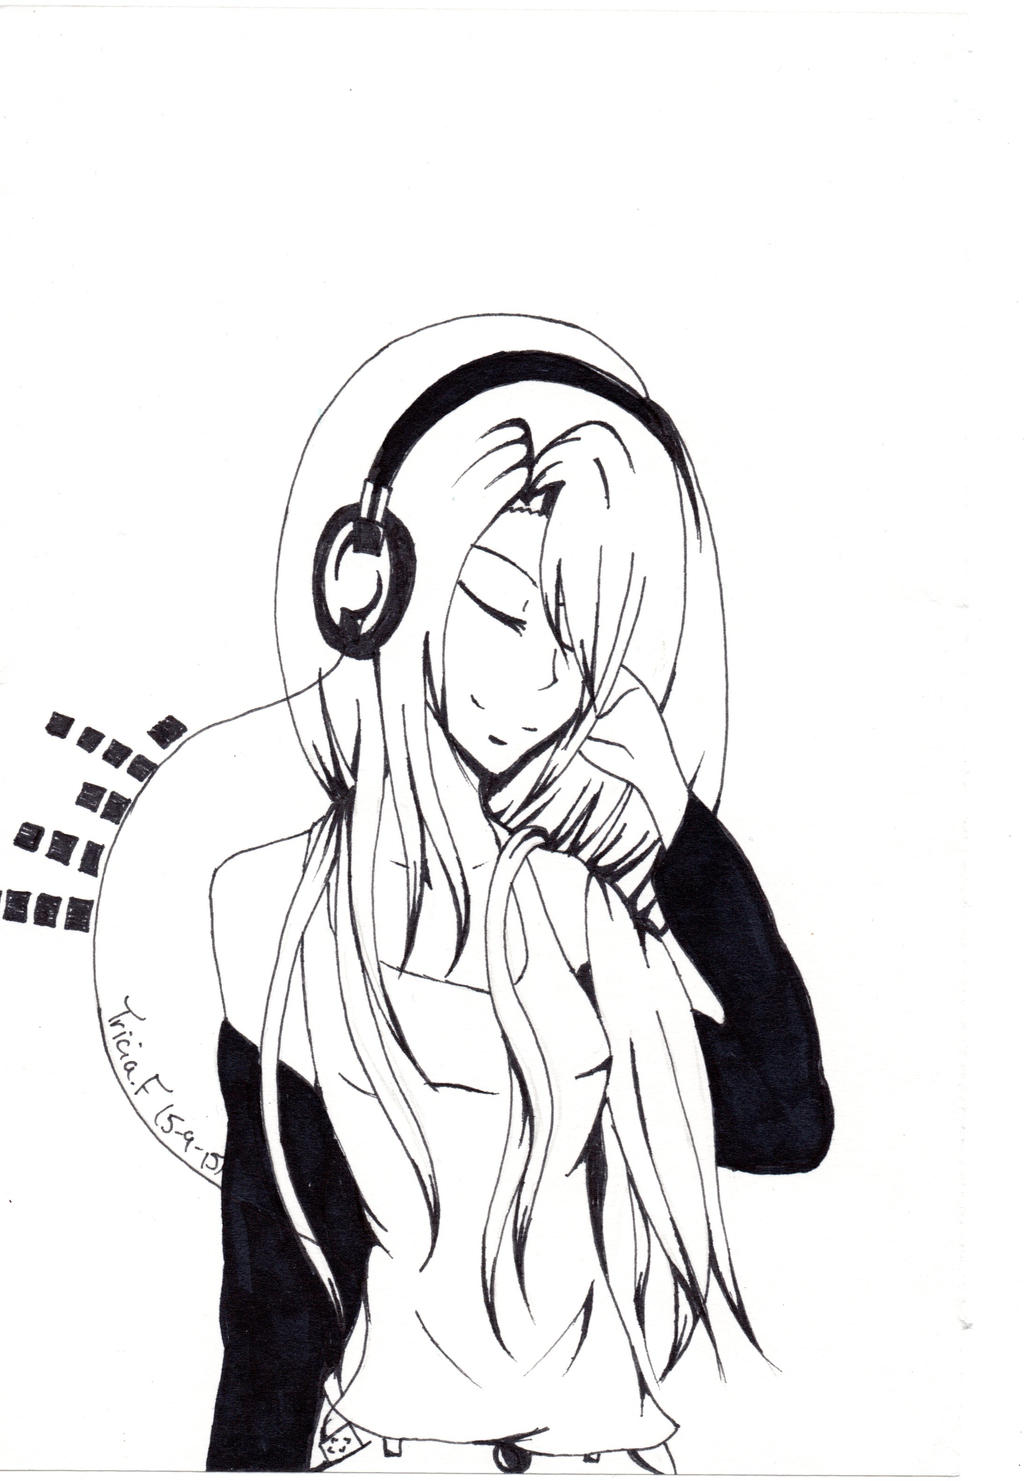 Headphone Anime Girl by TriciaCreations on DeviantArt Кричит Рисунок